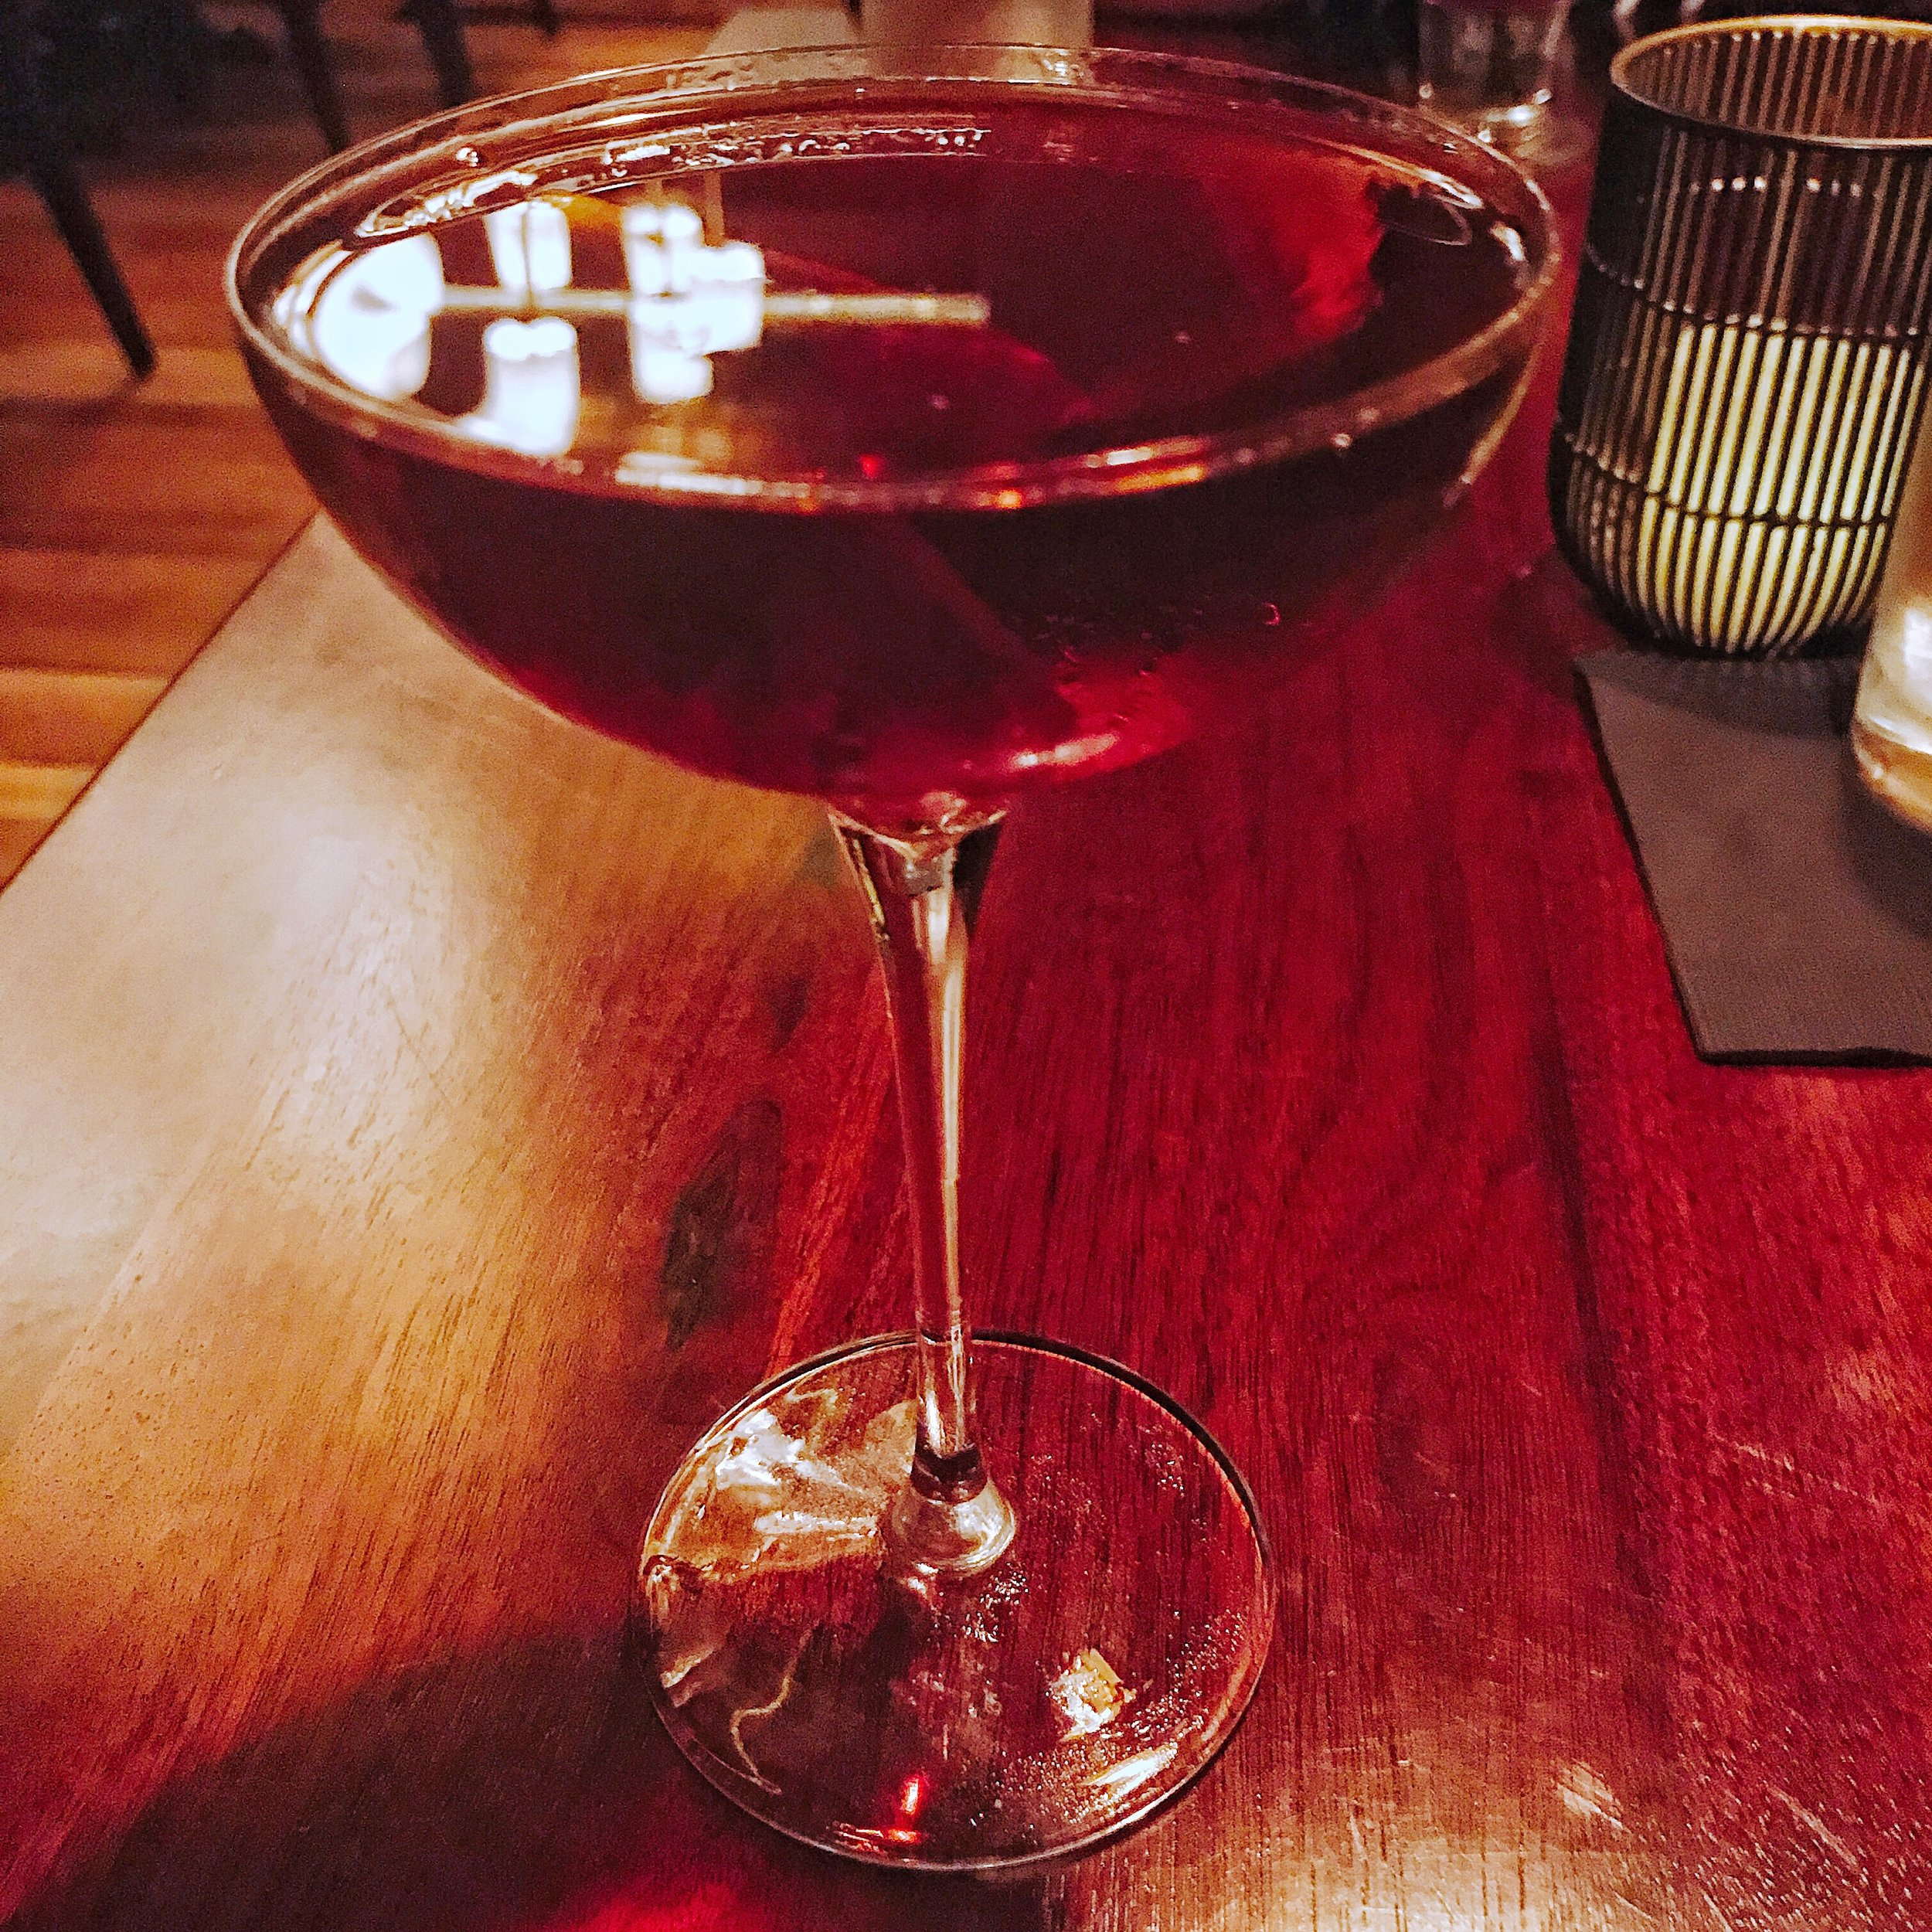 The Richardson - Henry McKenna 10 year bourbon, Pedro Ximenez sherry, Amaro Montenegro, Drambuie, Peychaud's bitters, served up. I really enjoyed this drink. It's very similar to a really good old fashioned, except the bourbon was not masked here and really came through well.